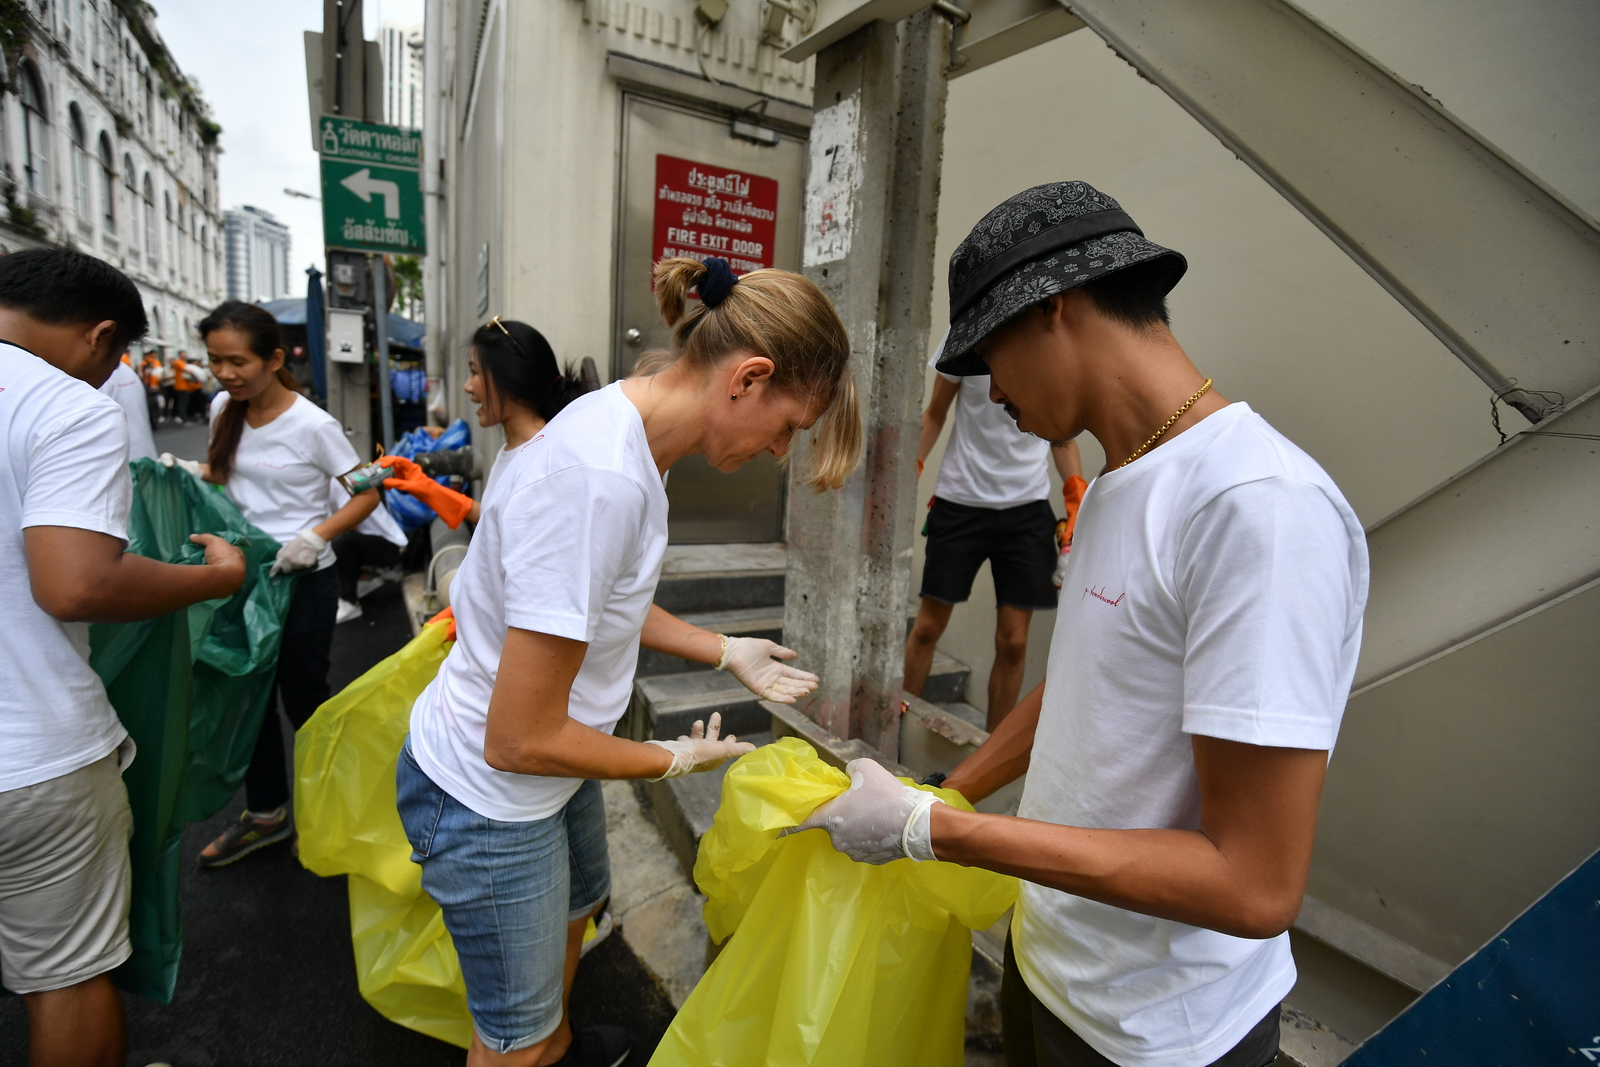 PTendercool-Event-Clean Up The World-190921-045